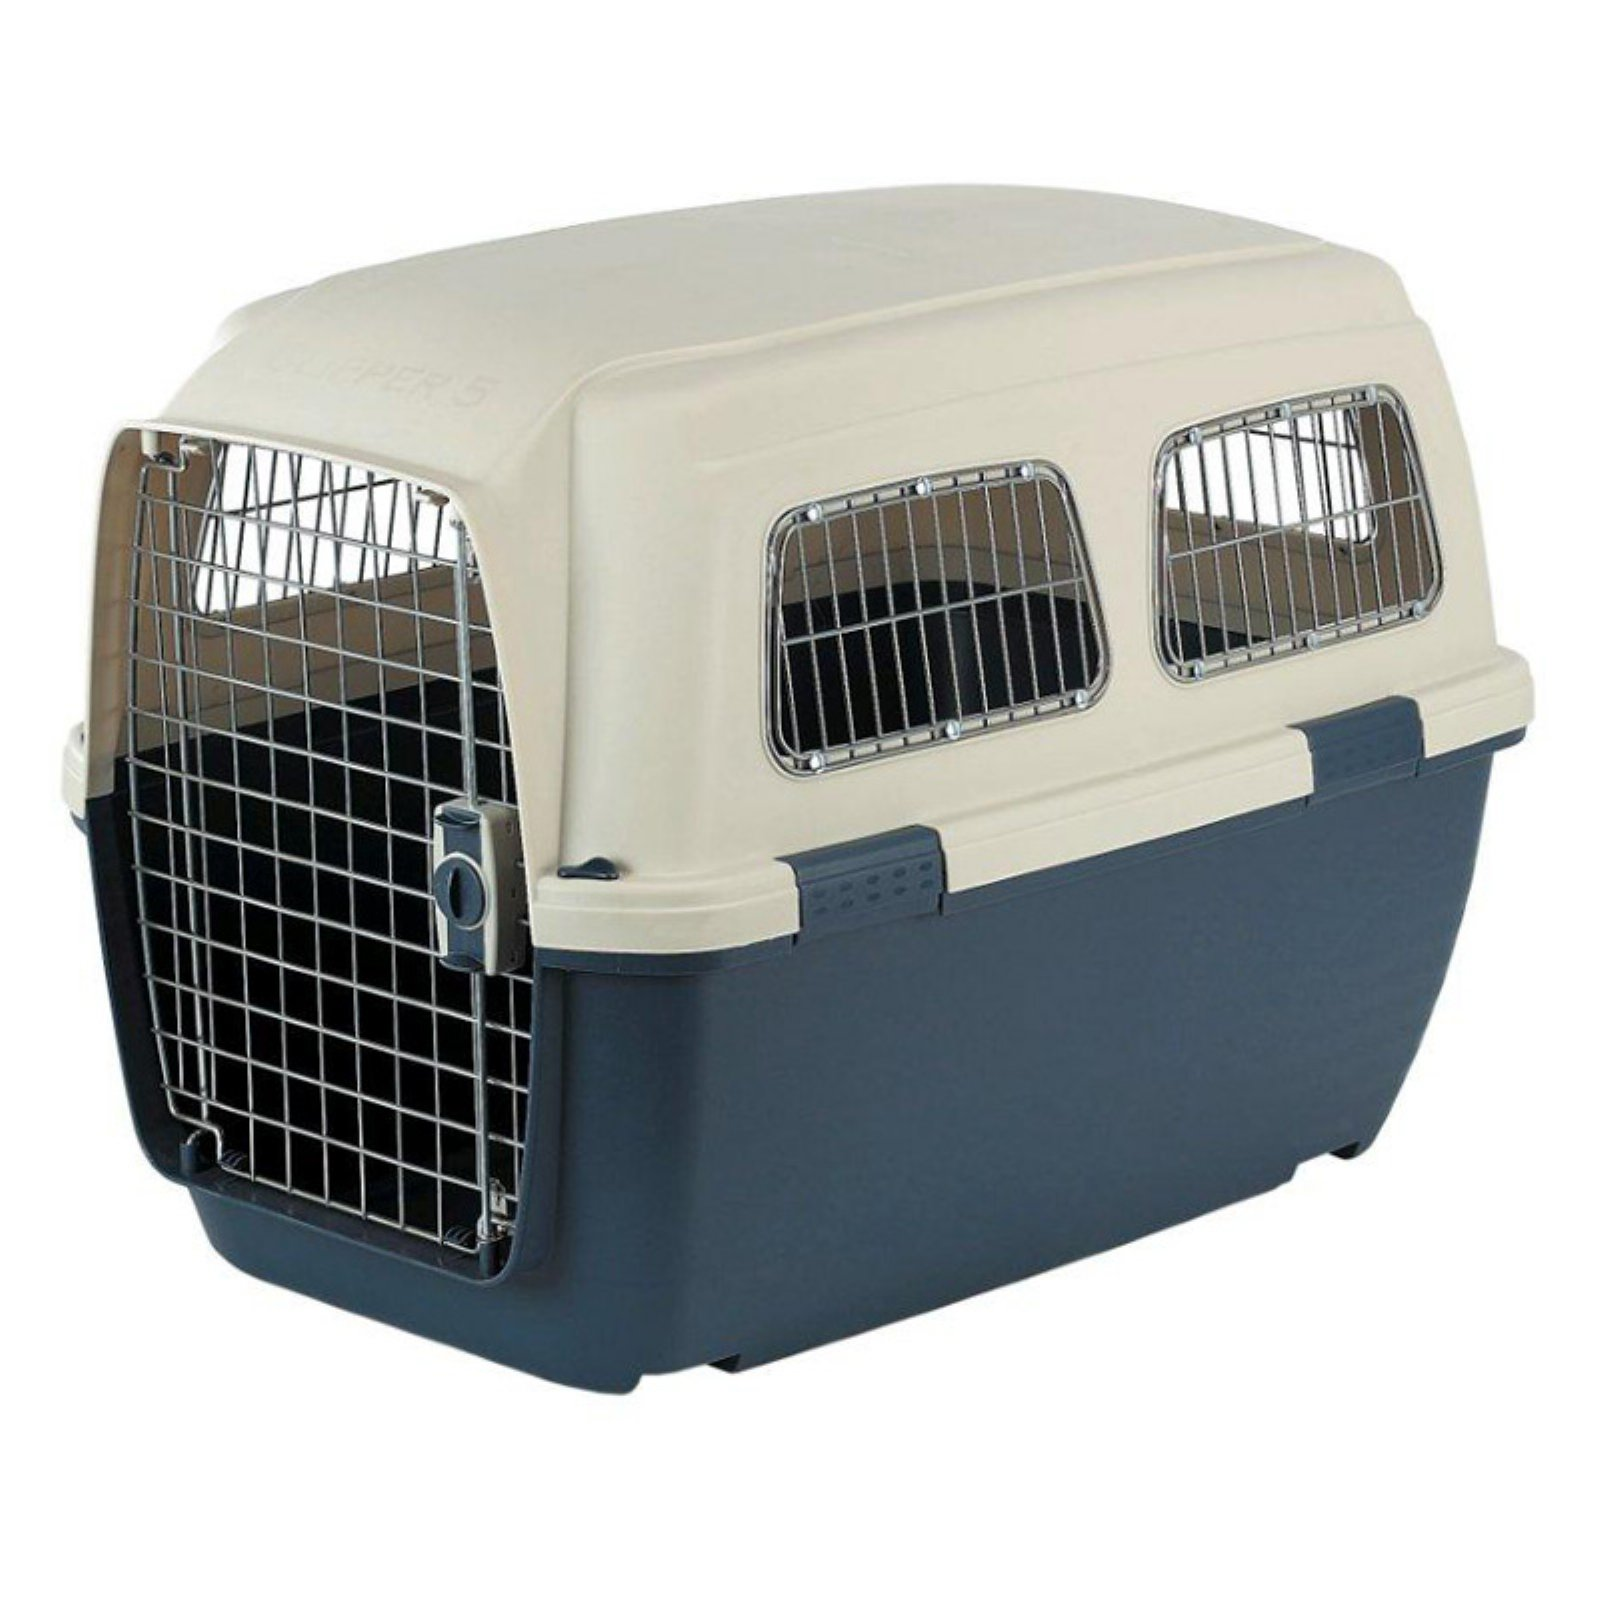 Clipper Ithaka Plastic Pet Carrier with Metal Windows